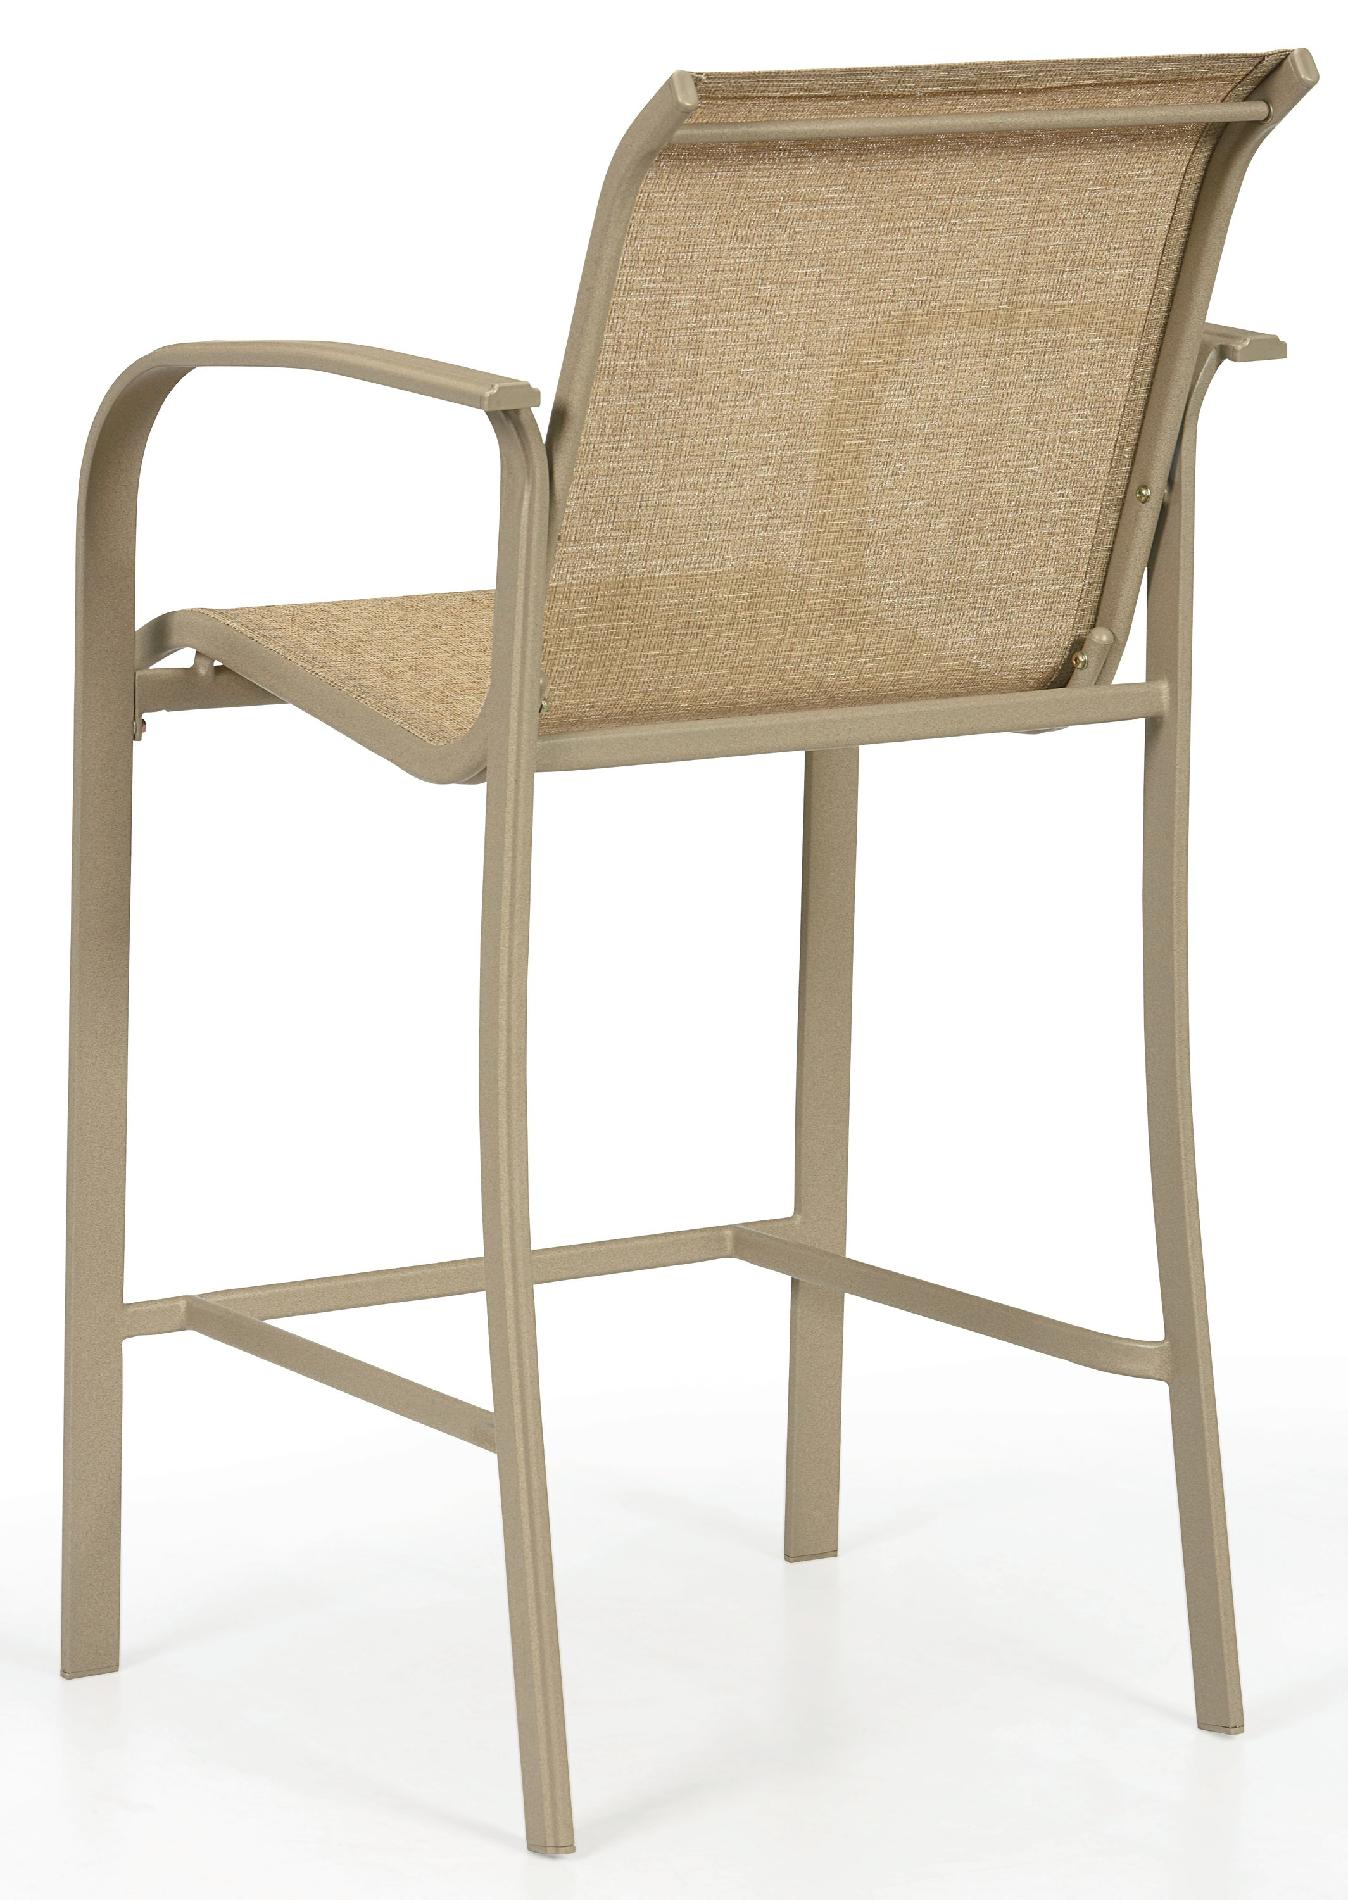 outdoor bar chairs velvet dining room uk jaclyn smith eastwood 4 limited availability 3